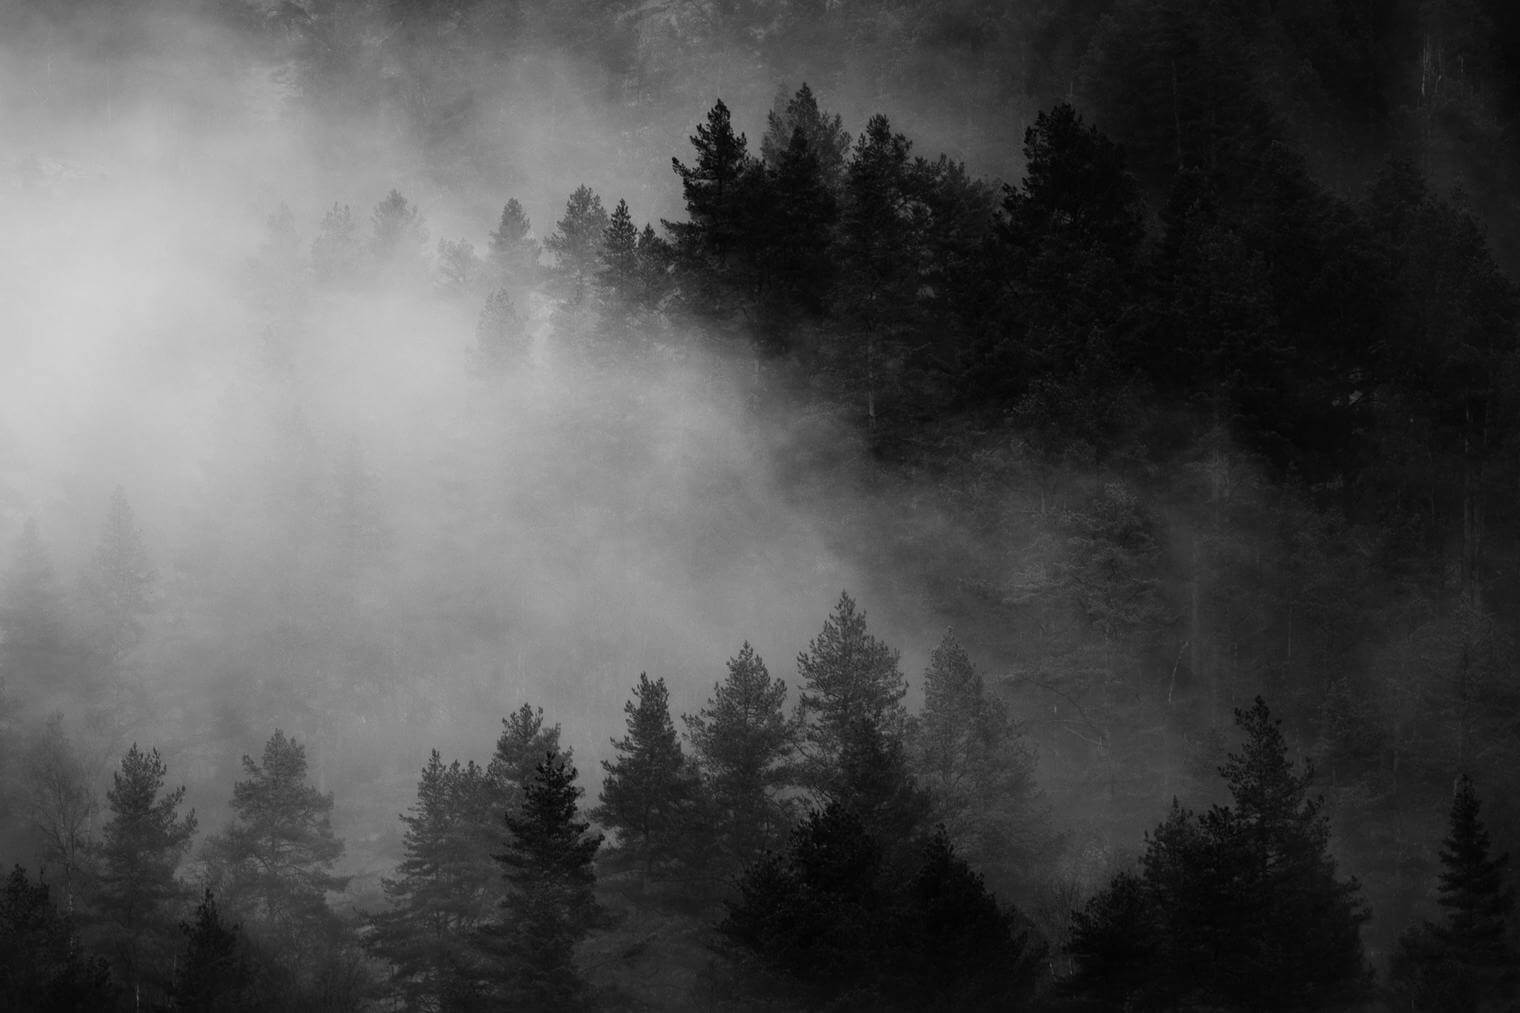 Forest in Black and White Tones